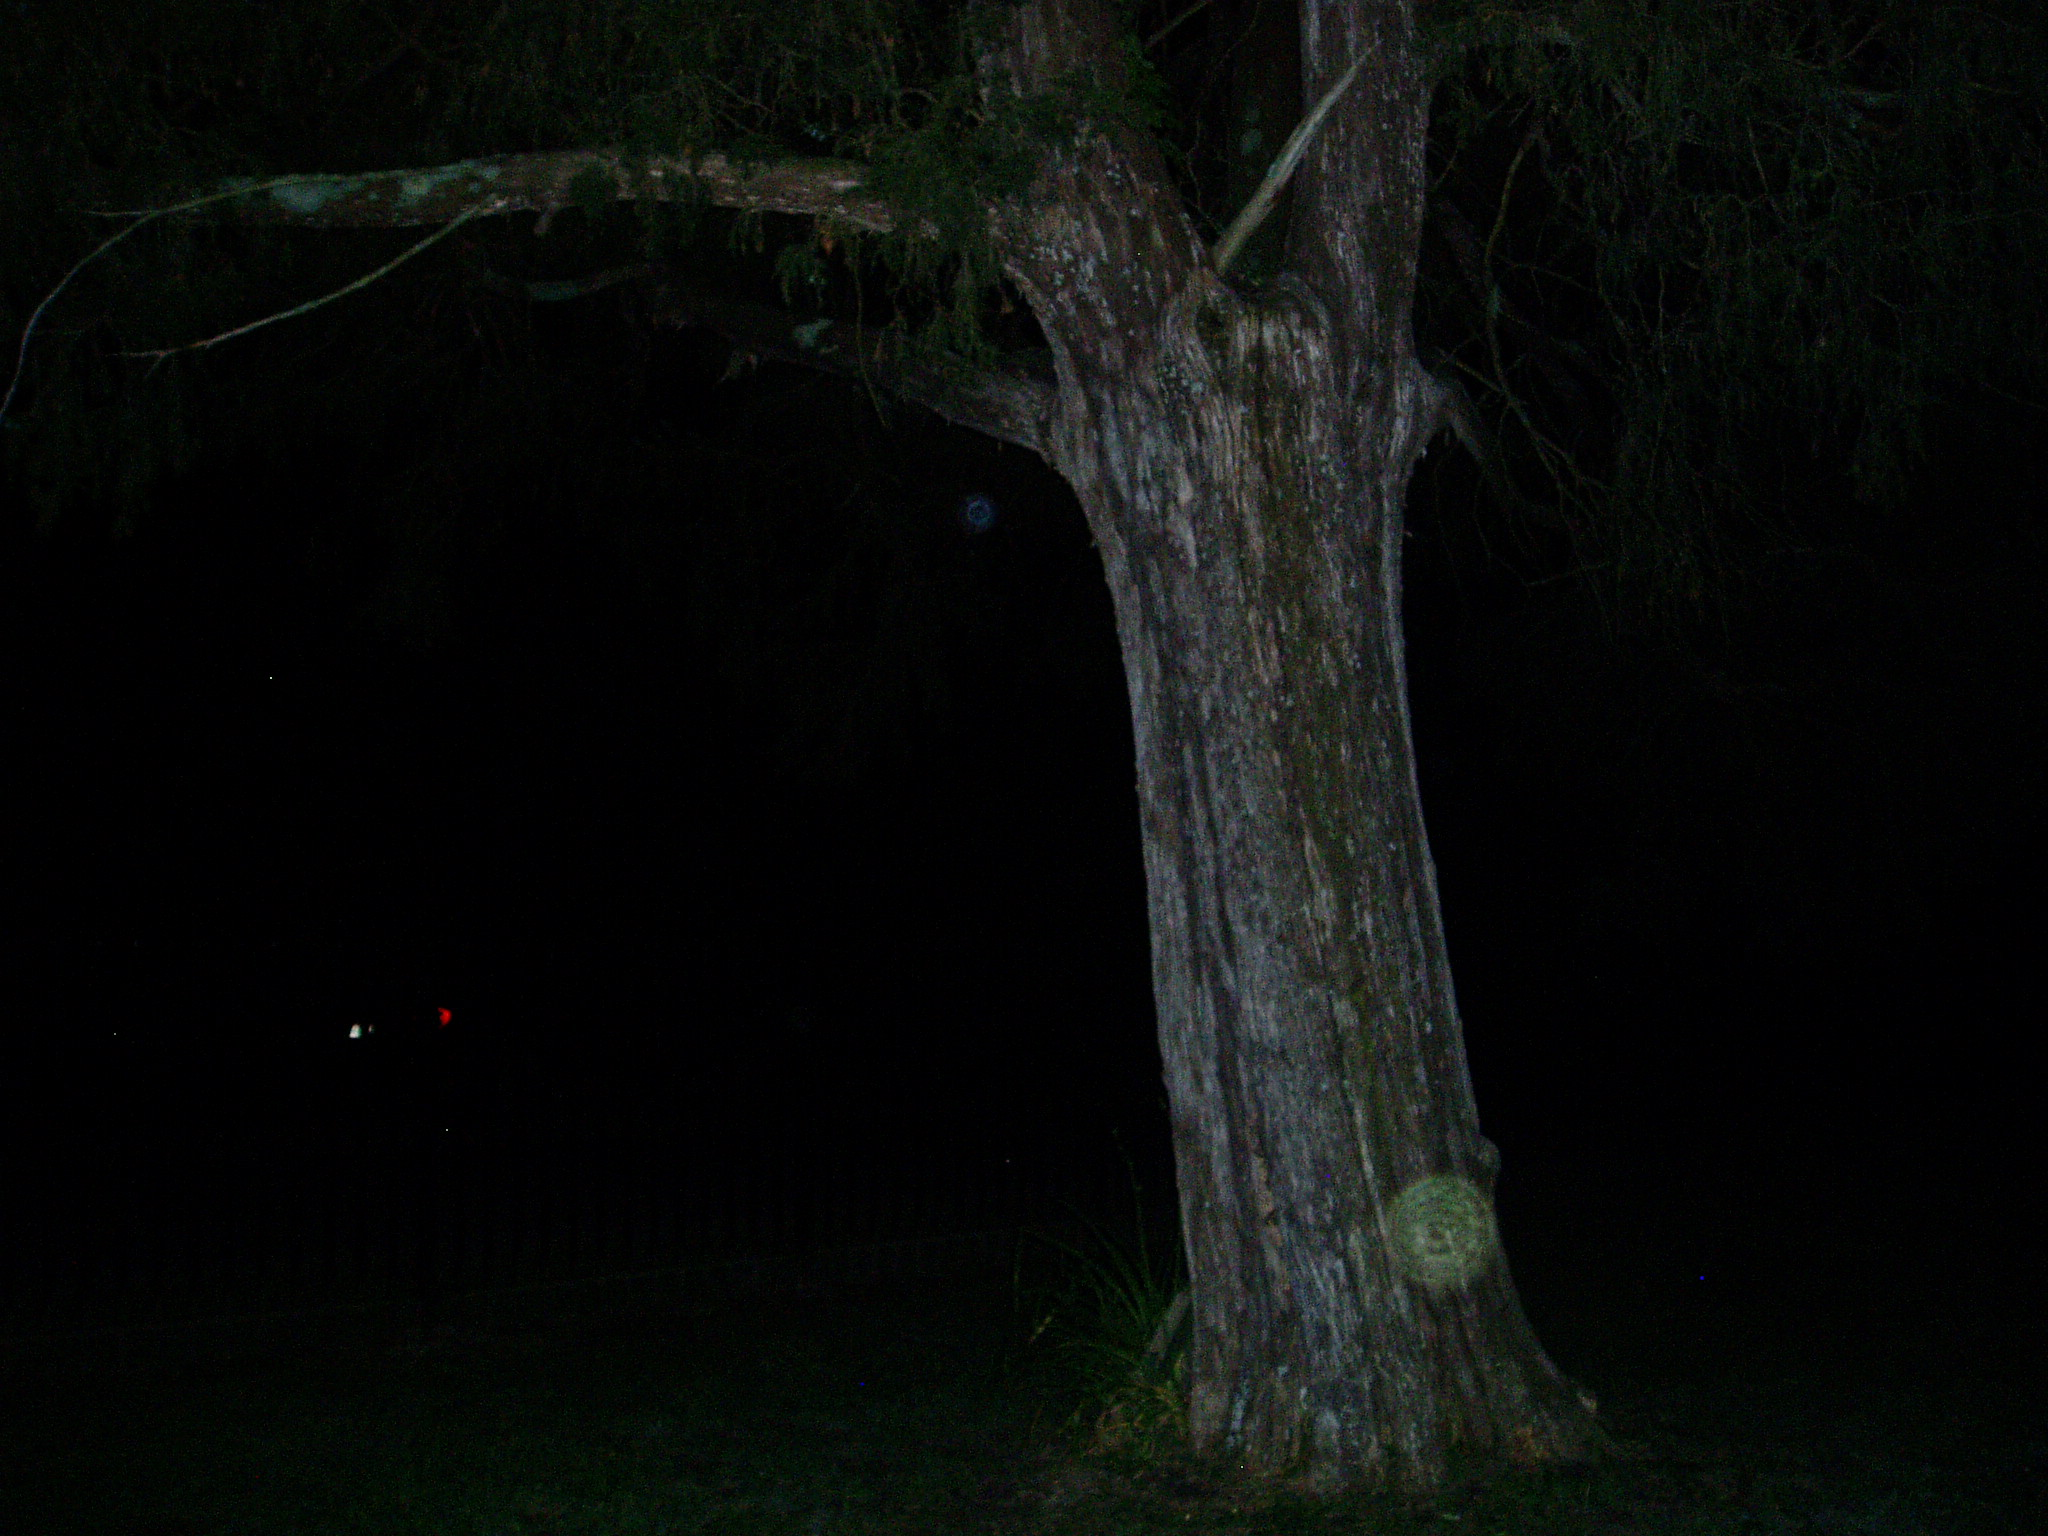 Yellow orb in front of tree